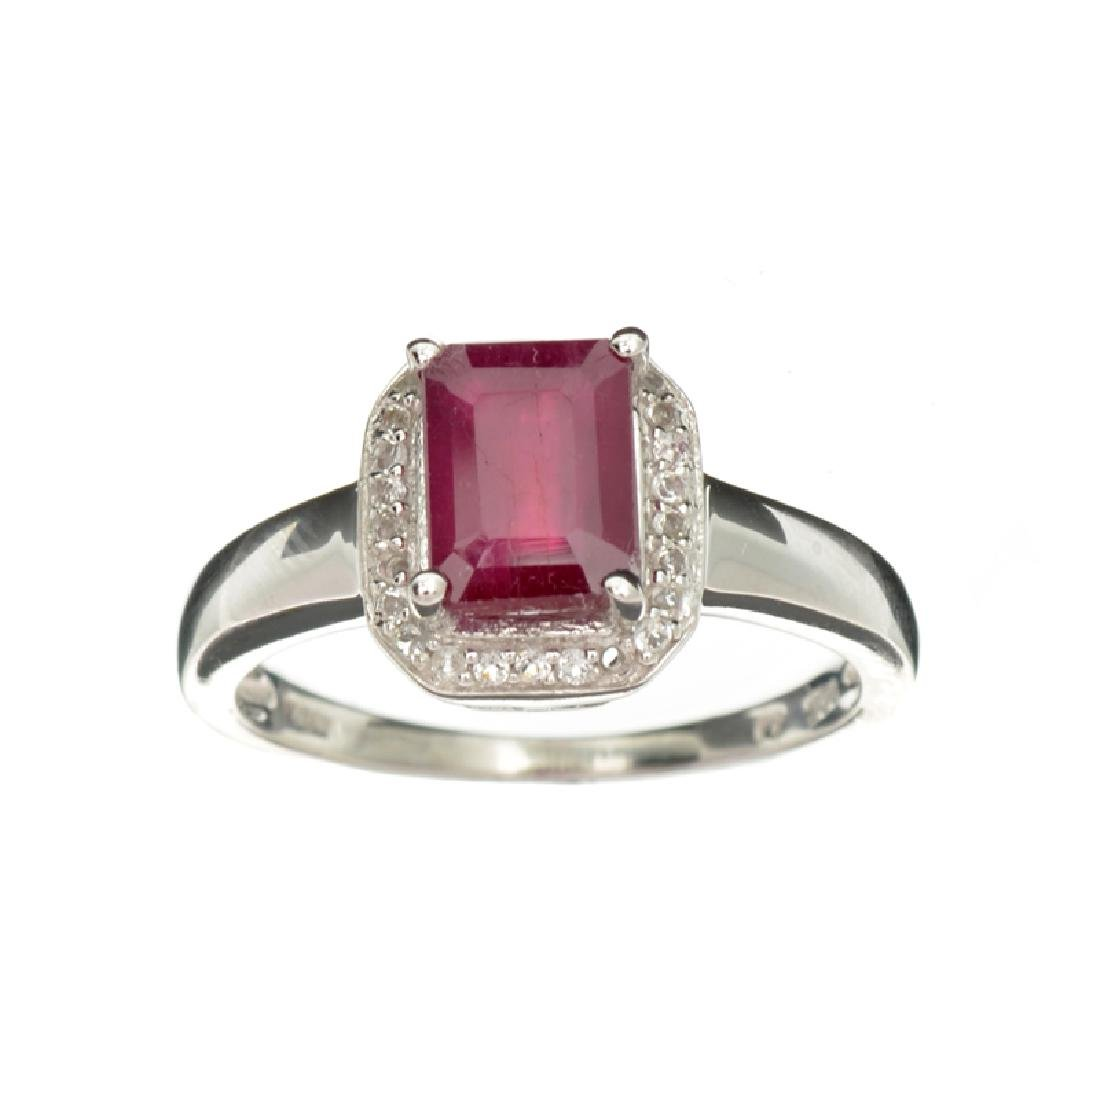 APP: 0.9k Fine Jewelry 1.98CT Red Ruby And White